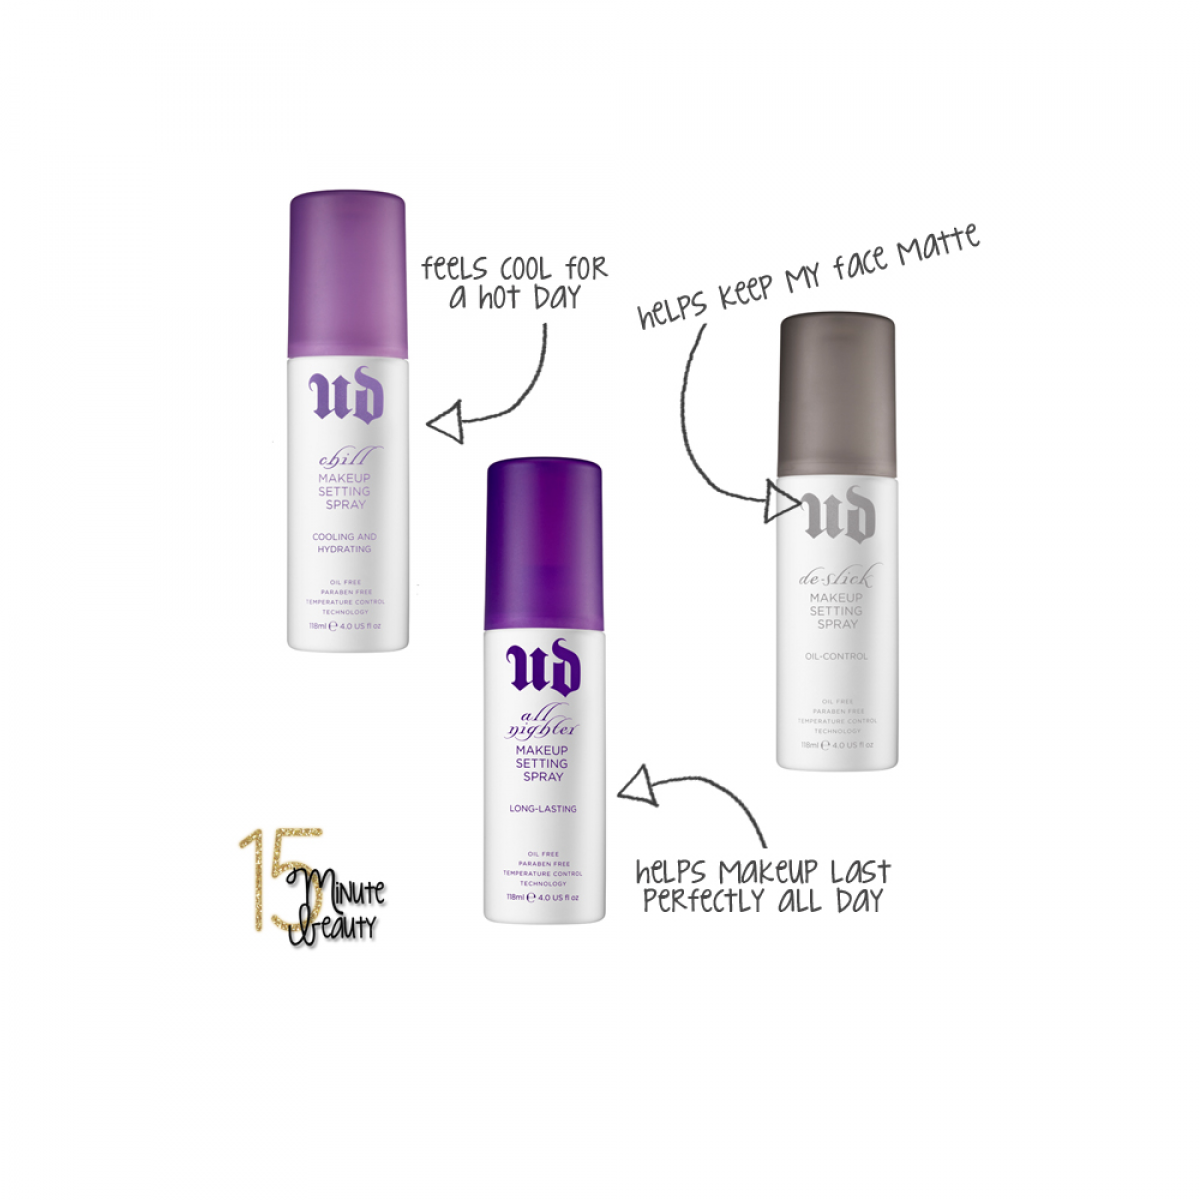 ea1c08f4c106 Urban Decay ALL NIGHTER Makeup Setting Spray